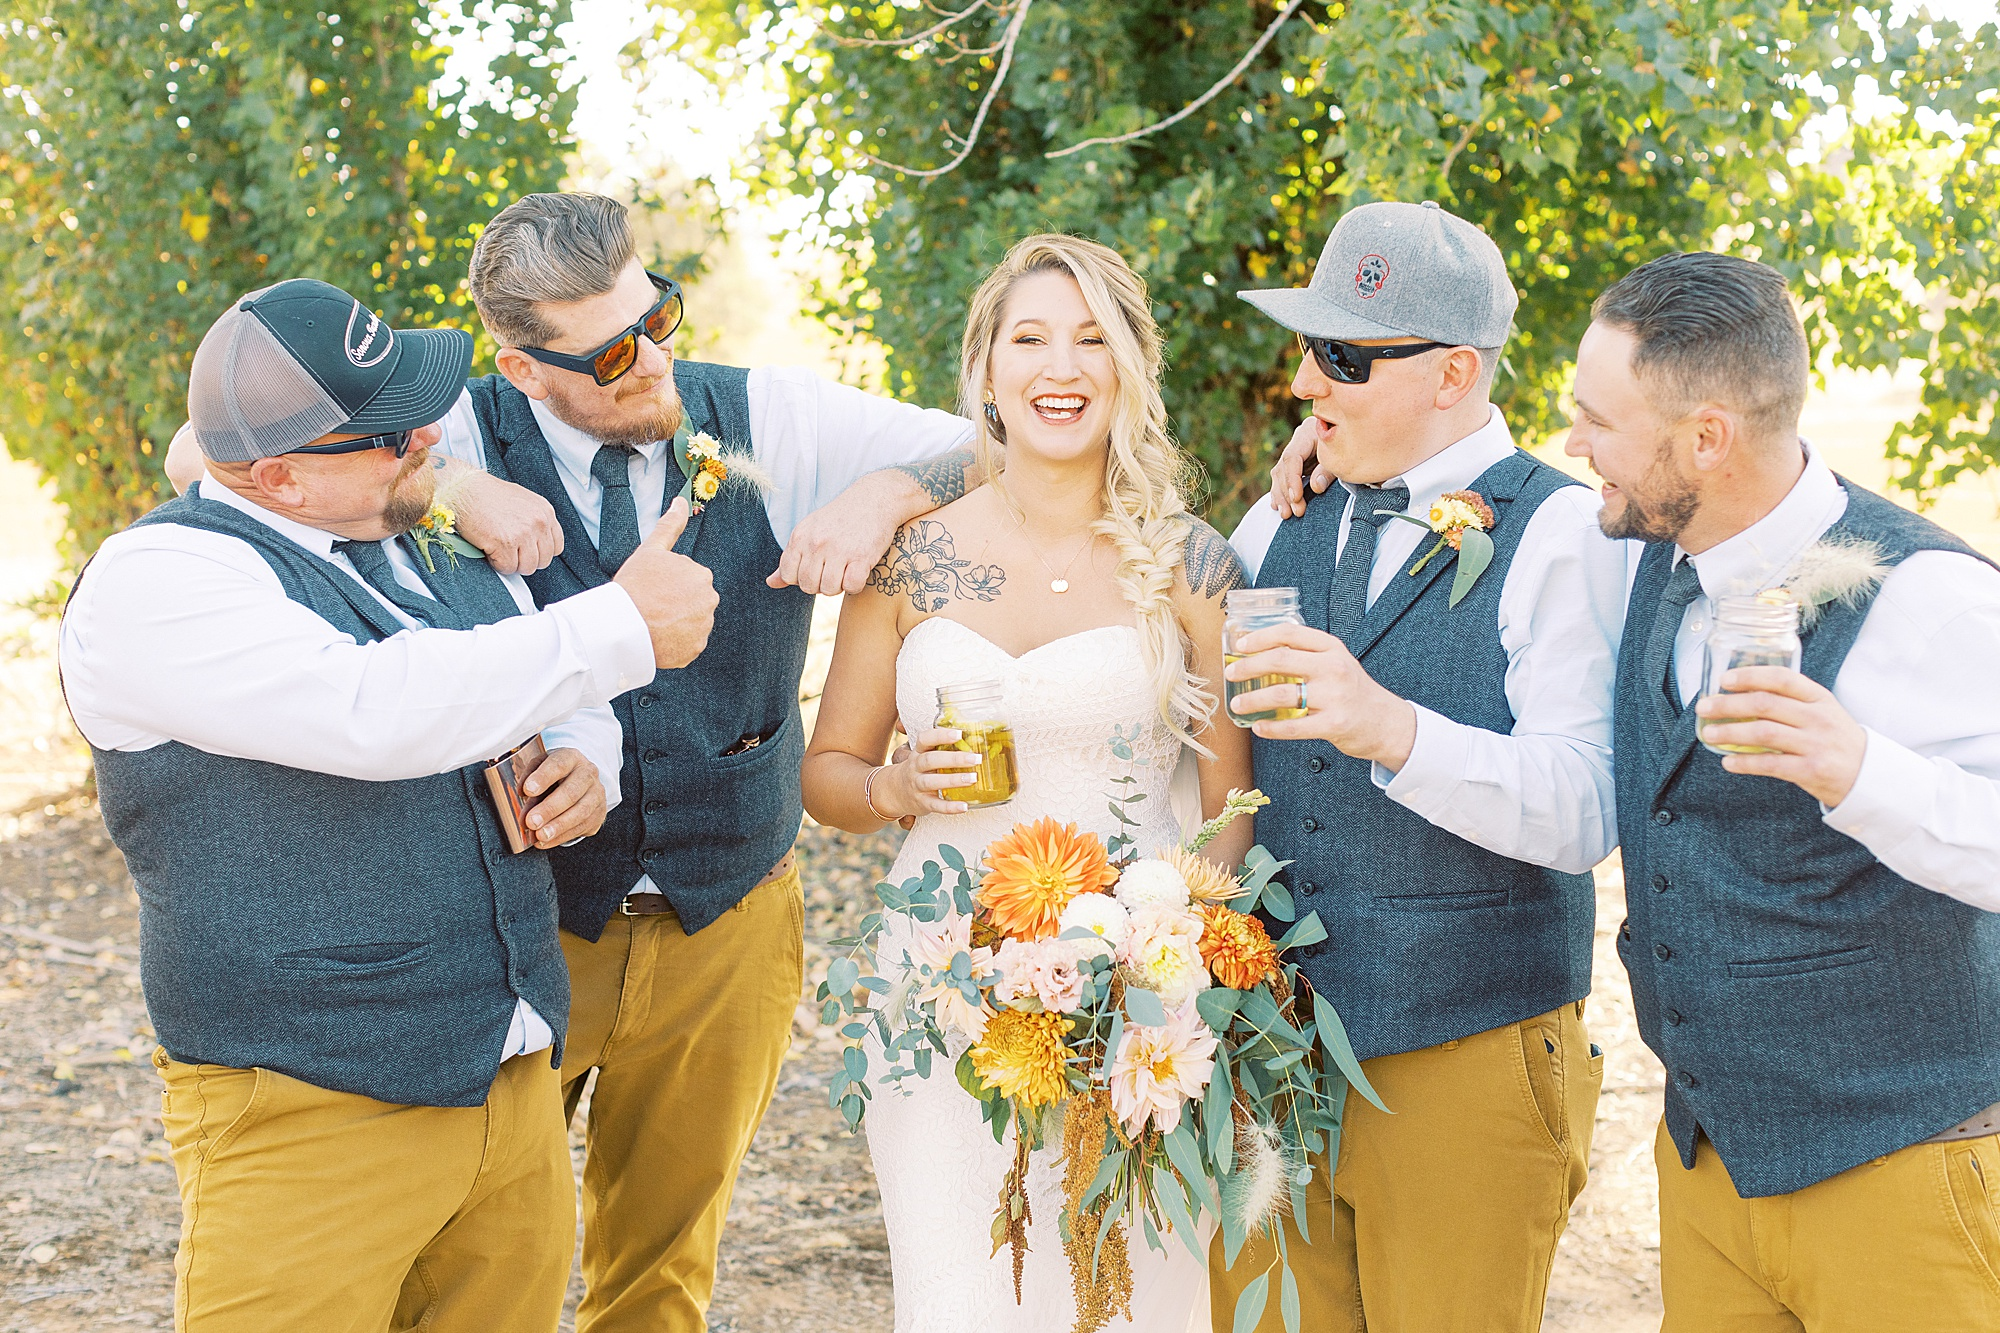 Sonora Wedding Photographer - Tiffany and Jesse - Ashley Baumgartner - Private Estate Summer Wedding_0110.jpg